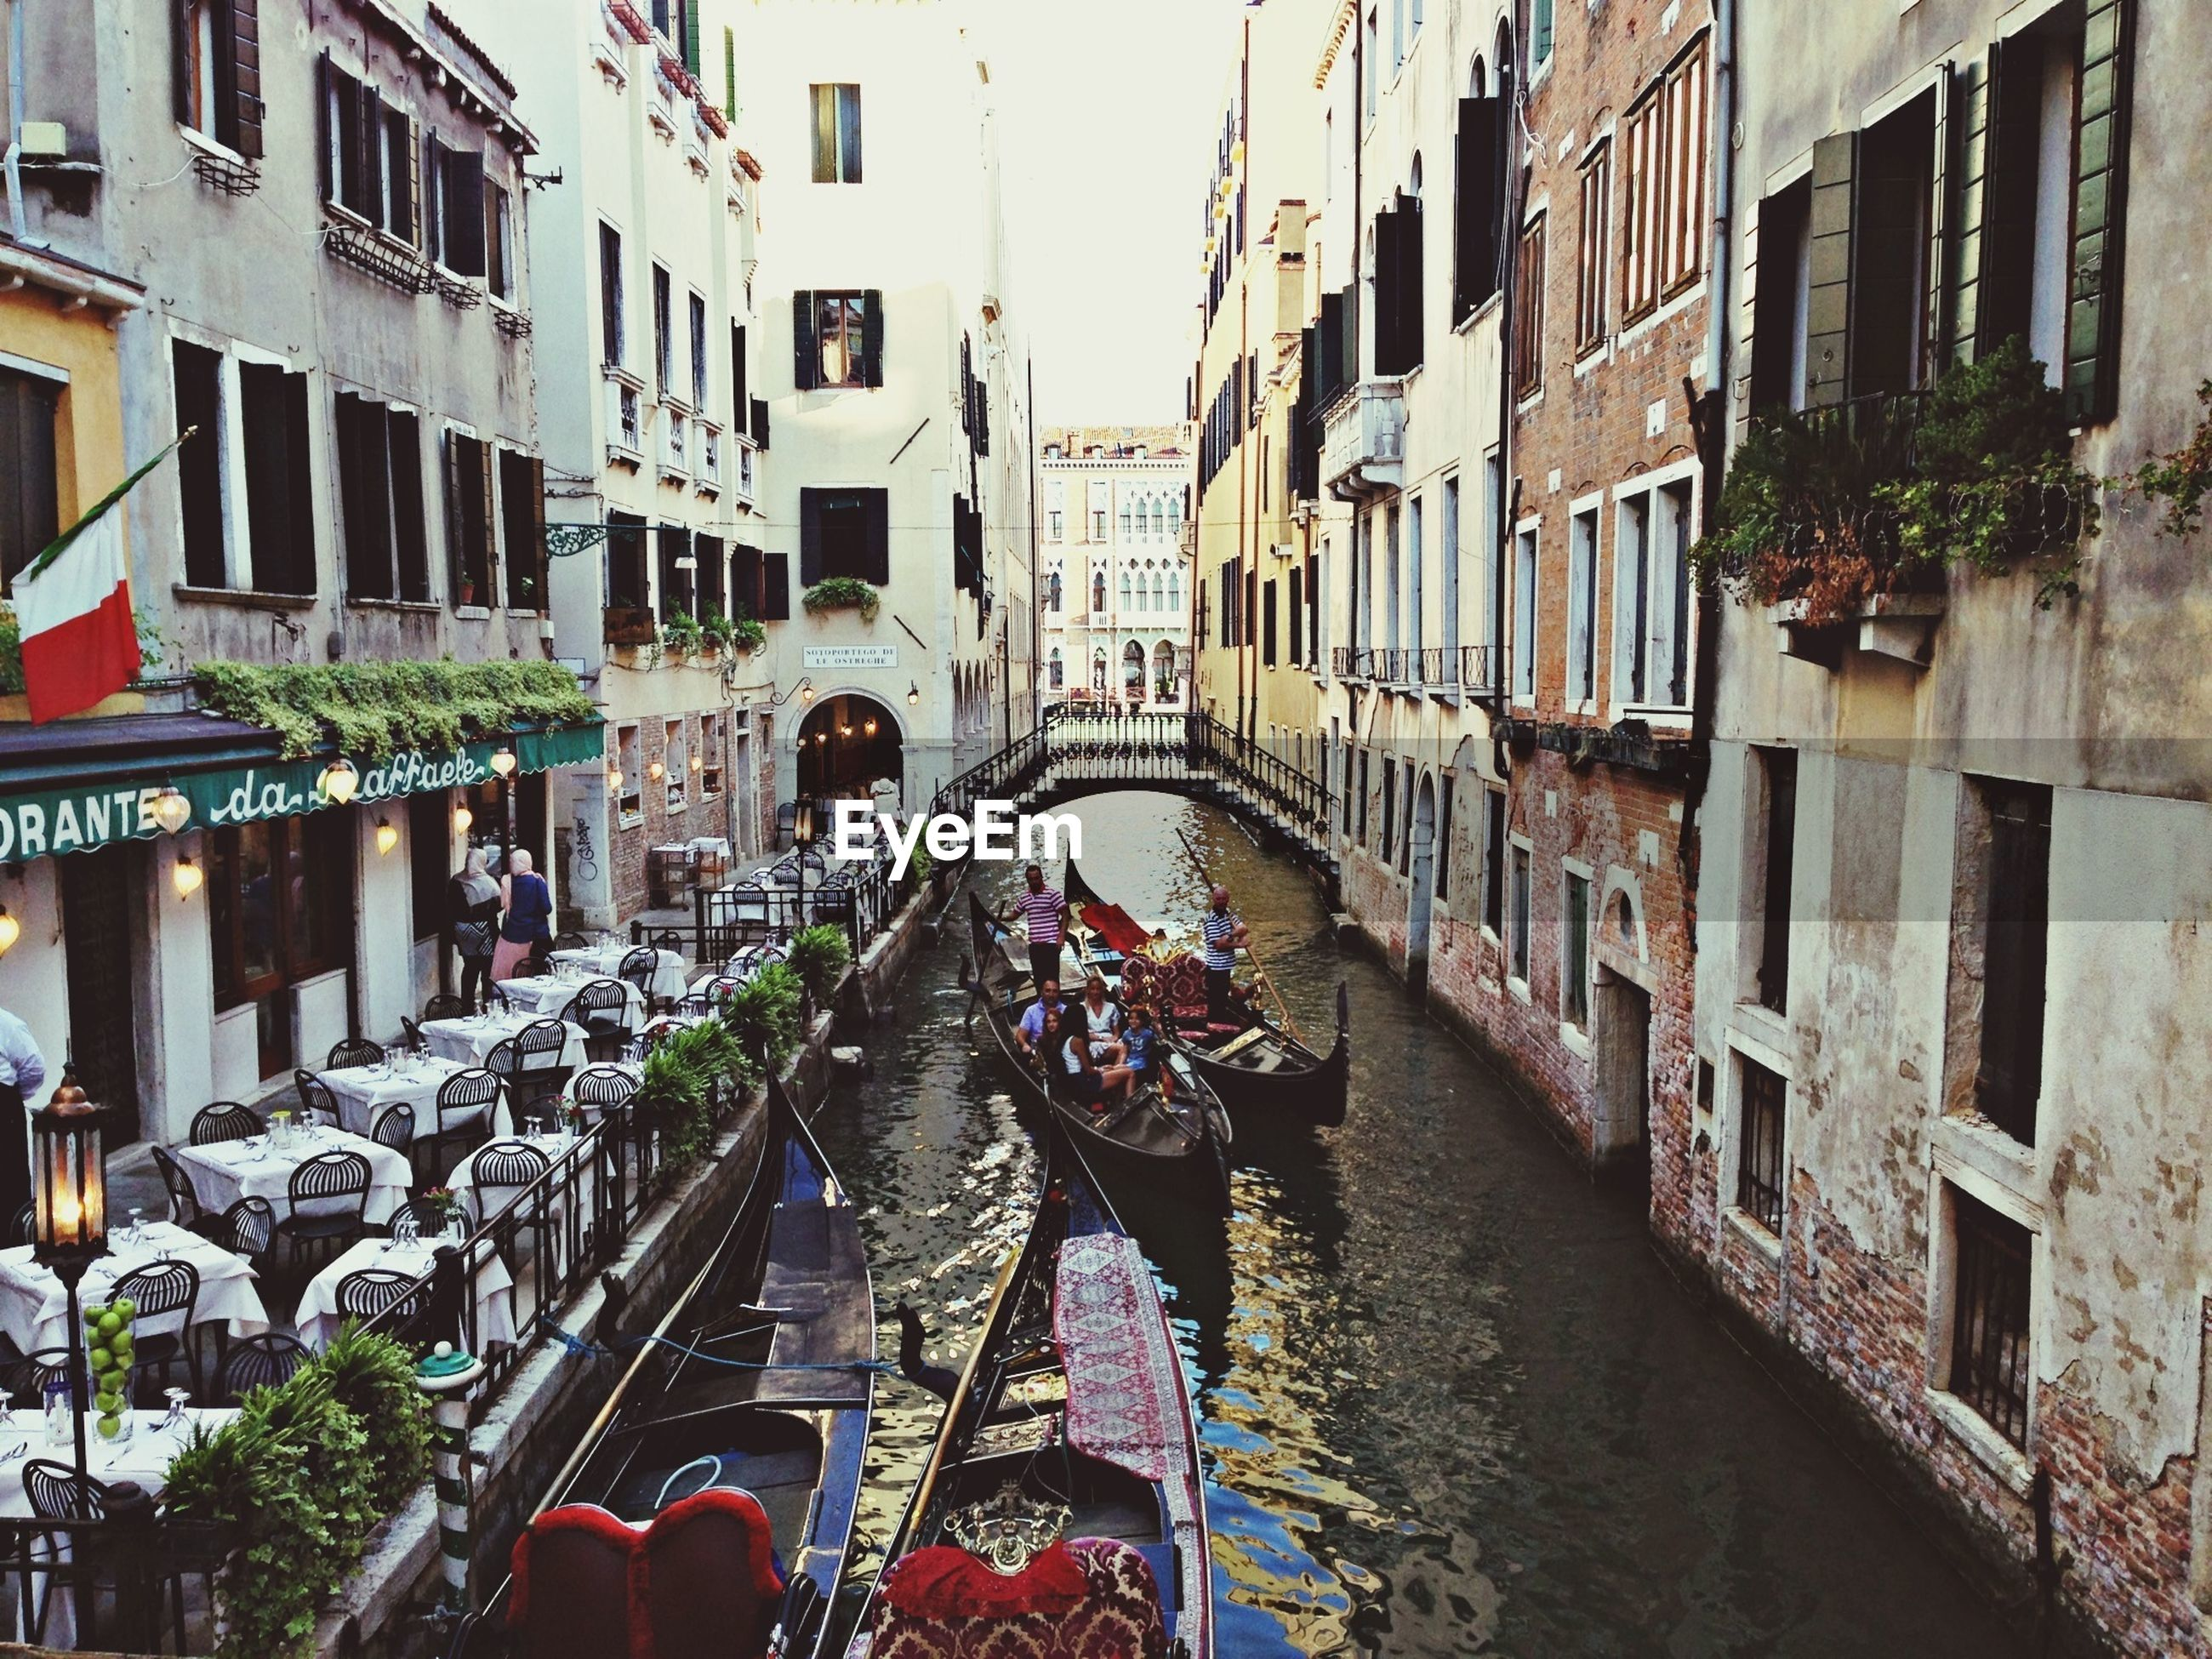 architecture, built structure, building exterior, canal, residential building, residential structure, water, building, city, arch, window, transportation, house, old town, diminishing perspective, day, incidental people, street, town, railing